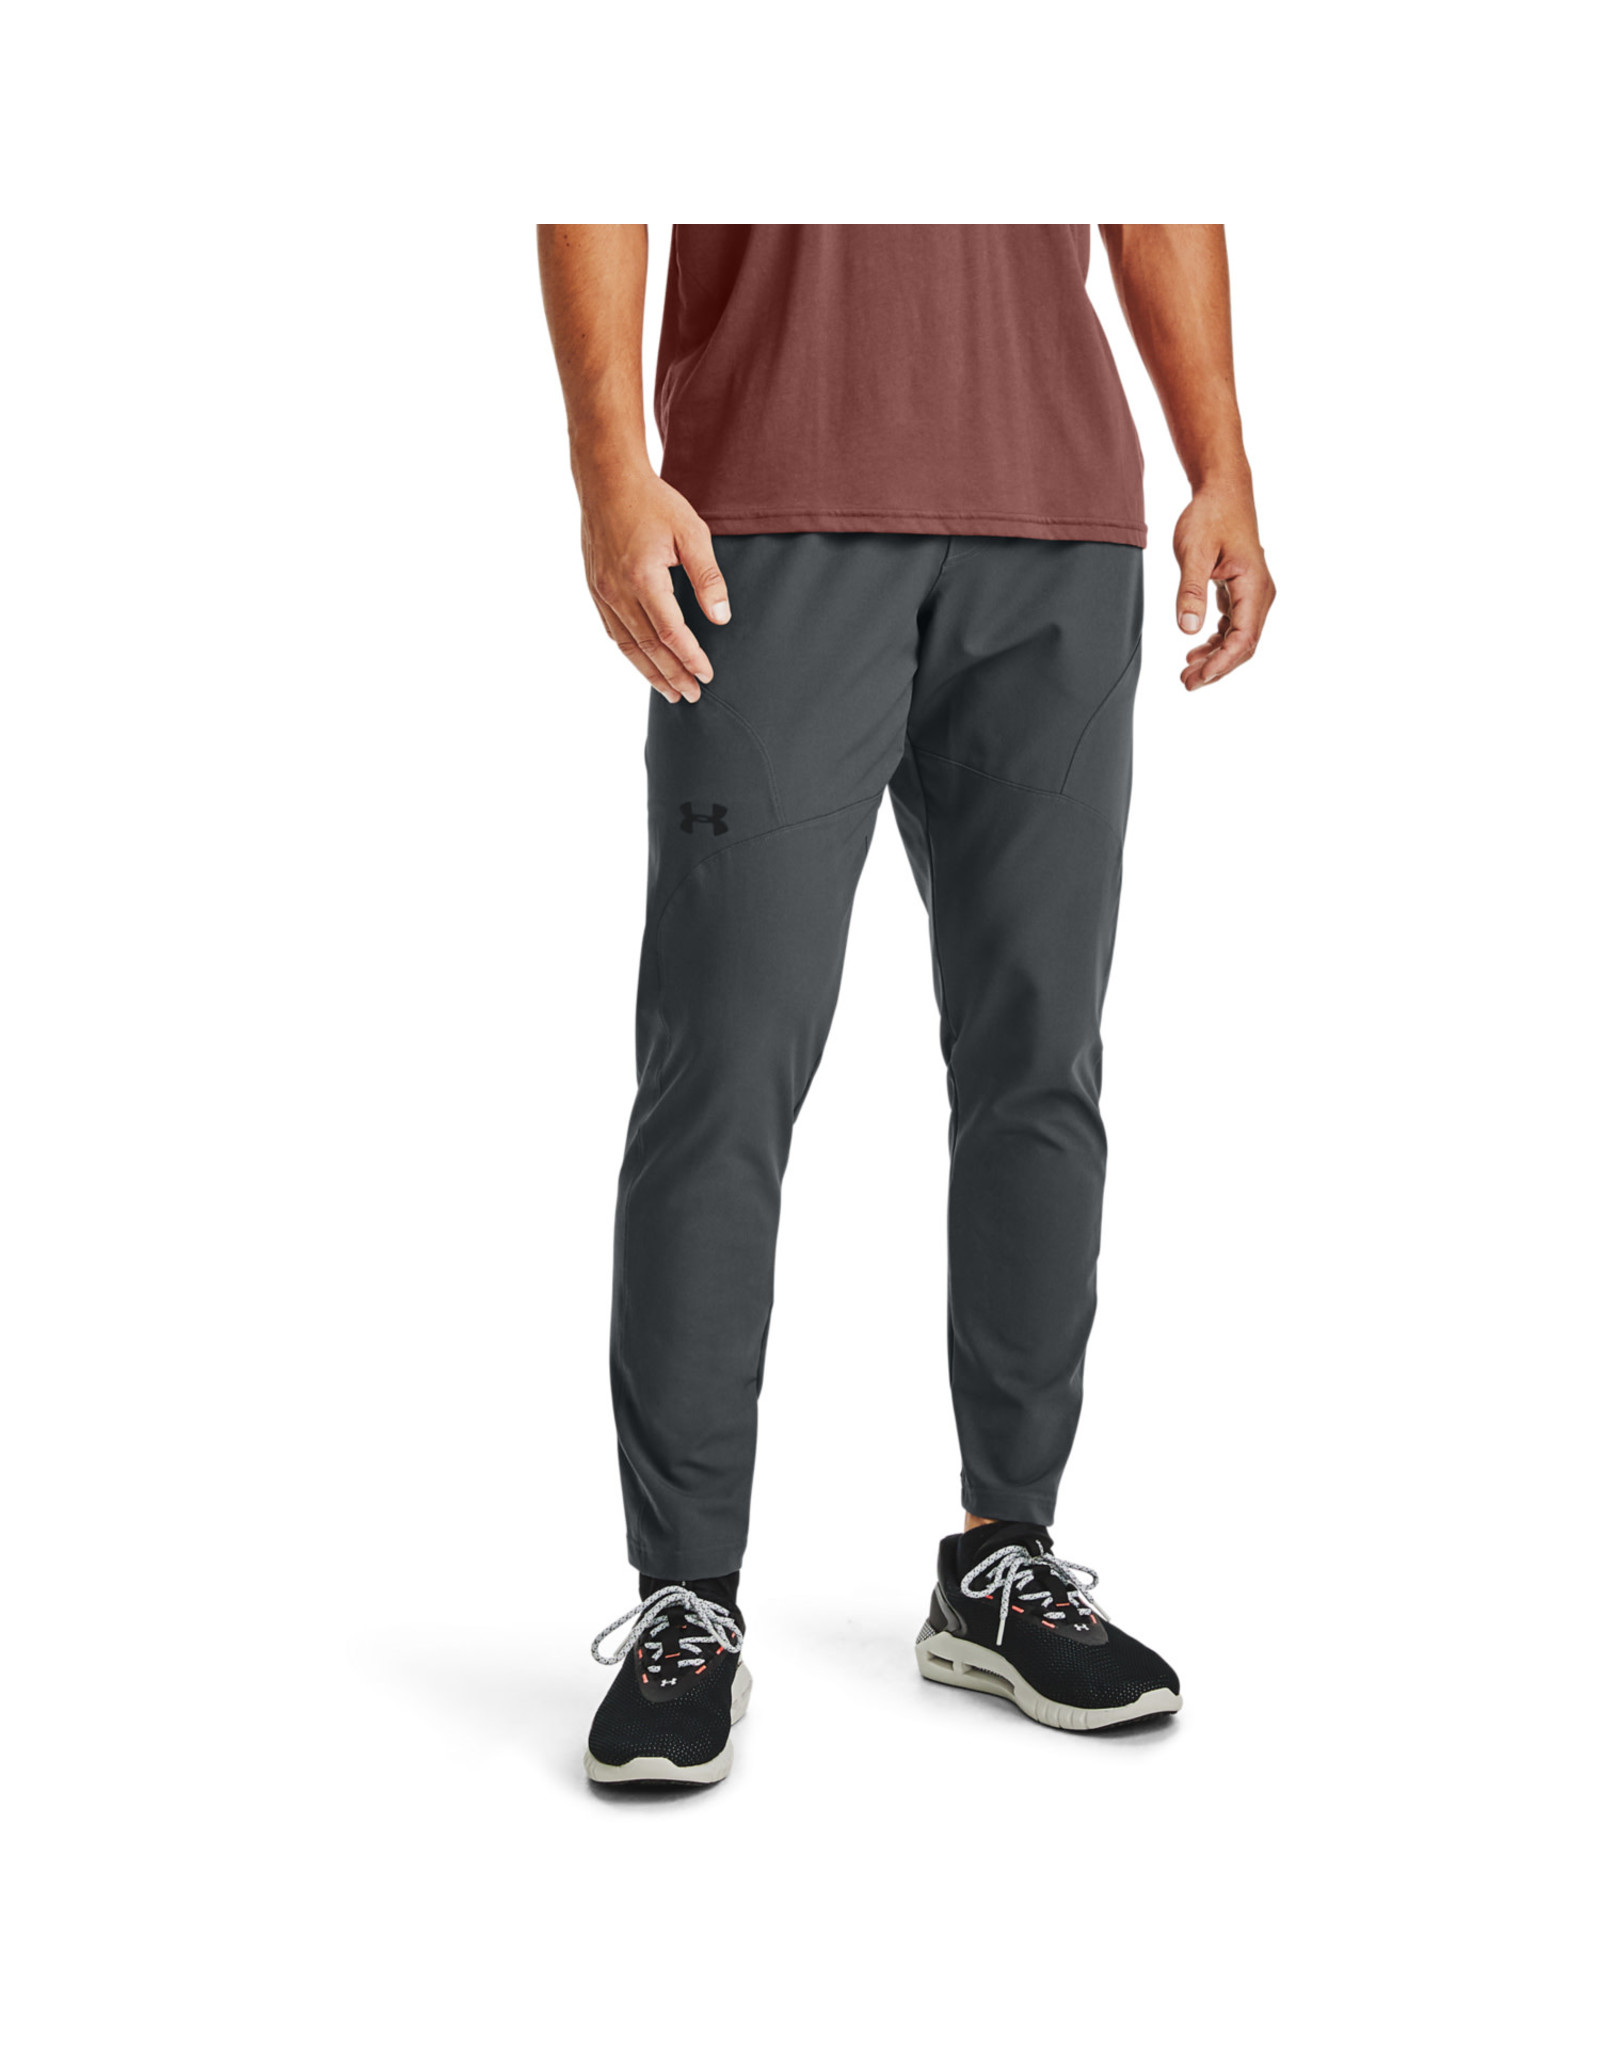 Under Armour UA Unstoppable Tapered Pants - Grey